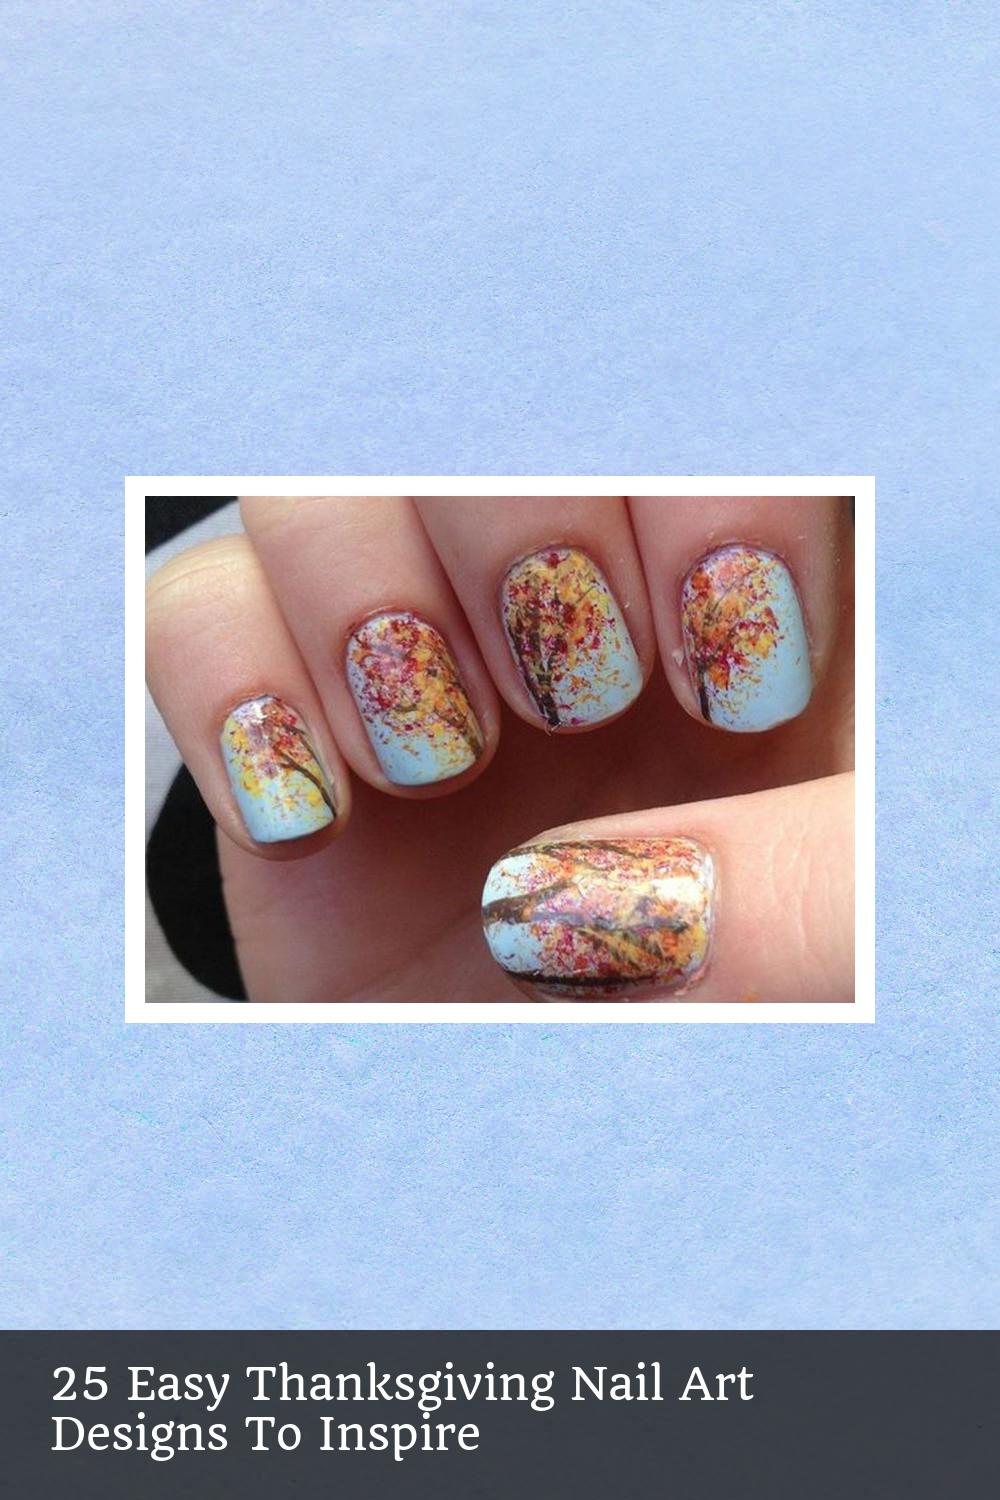 25 Easy Thanksgiving Nail Art Designs To Inspire 12